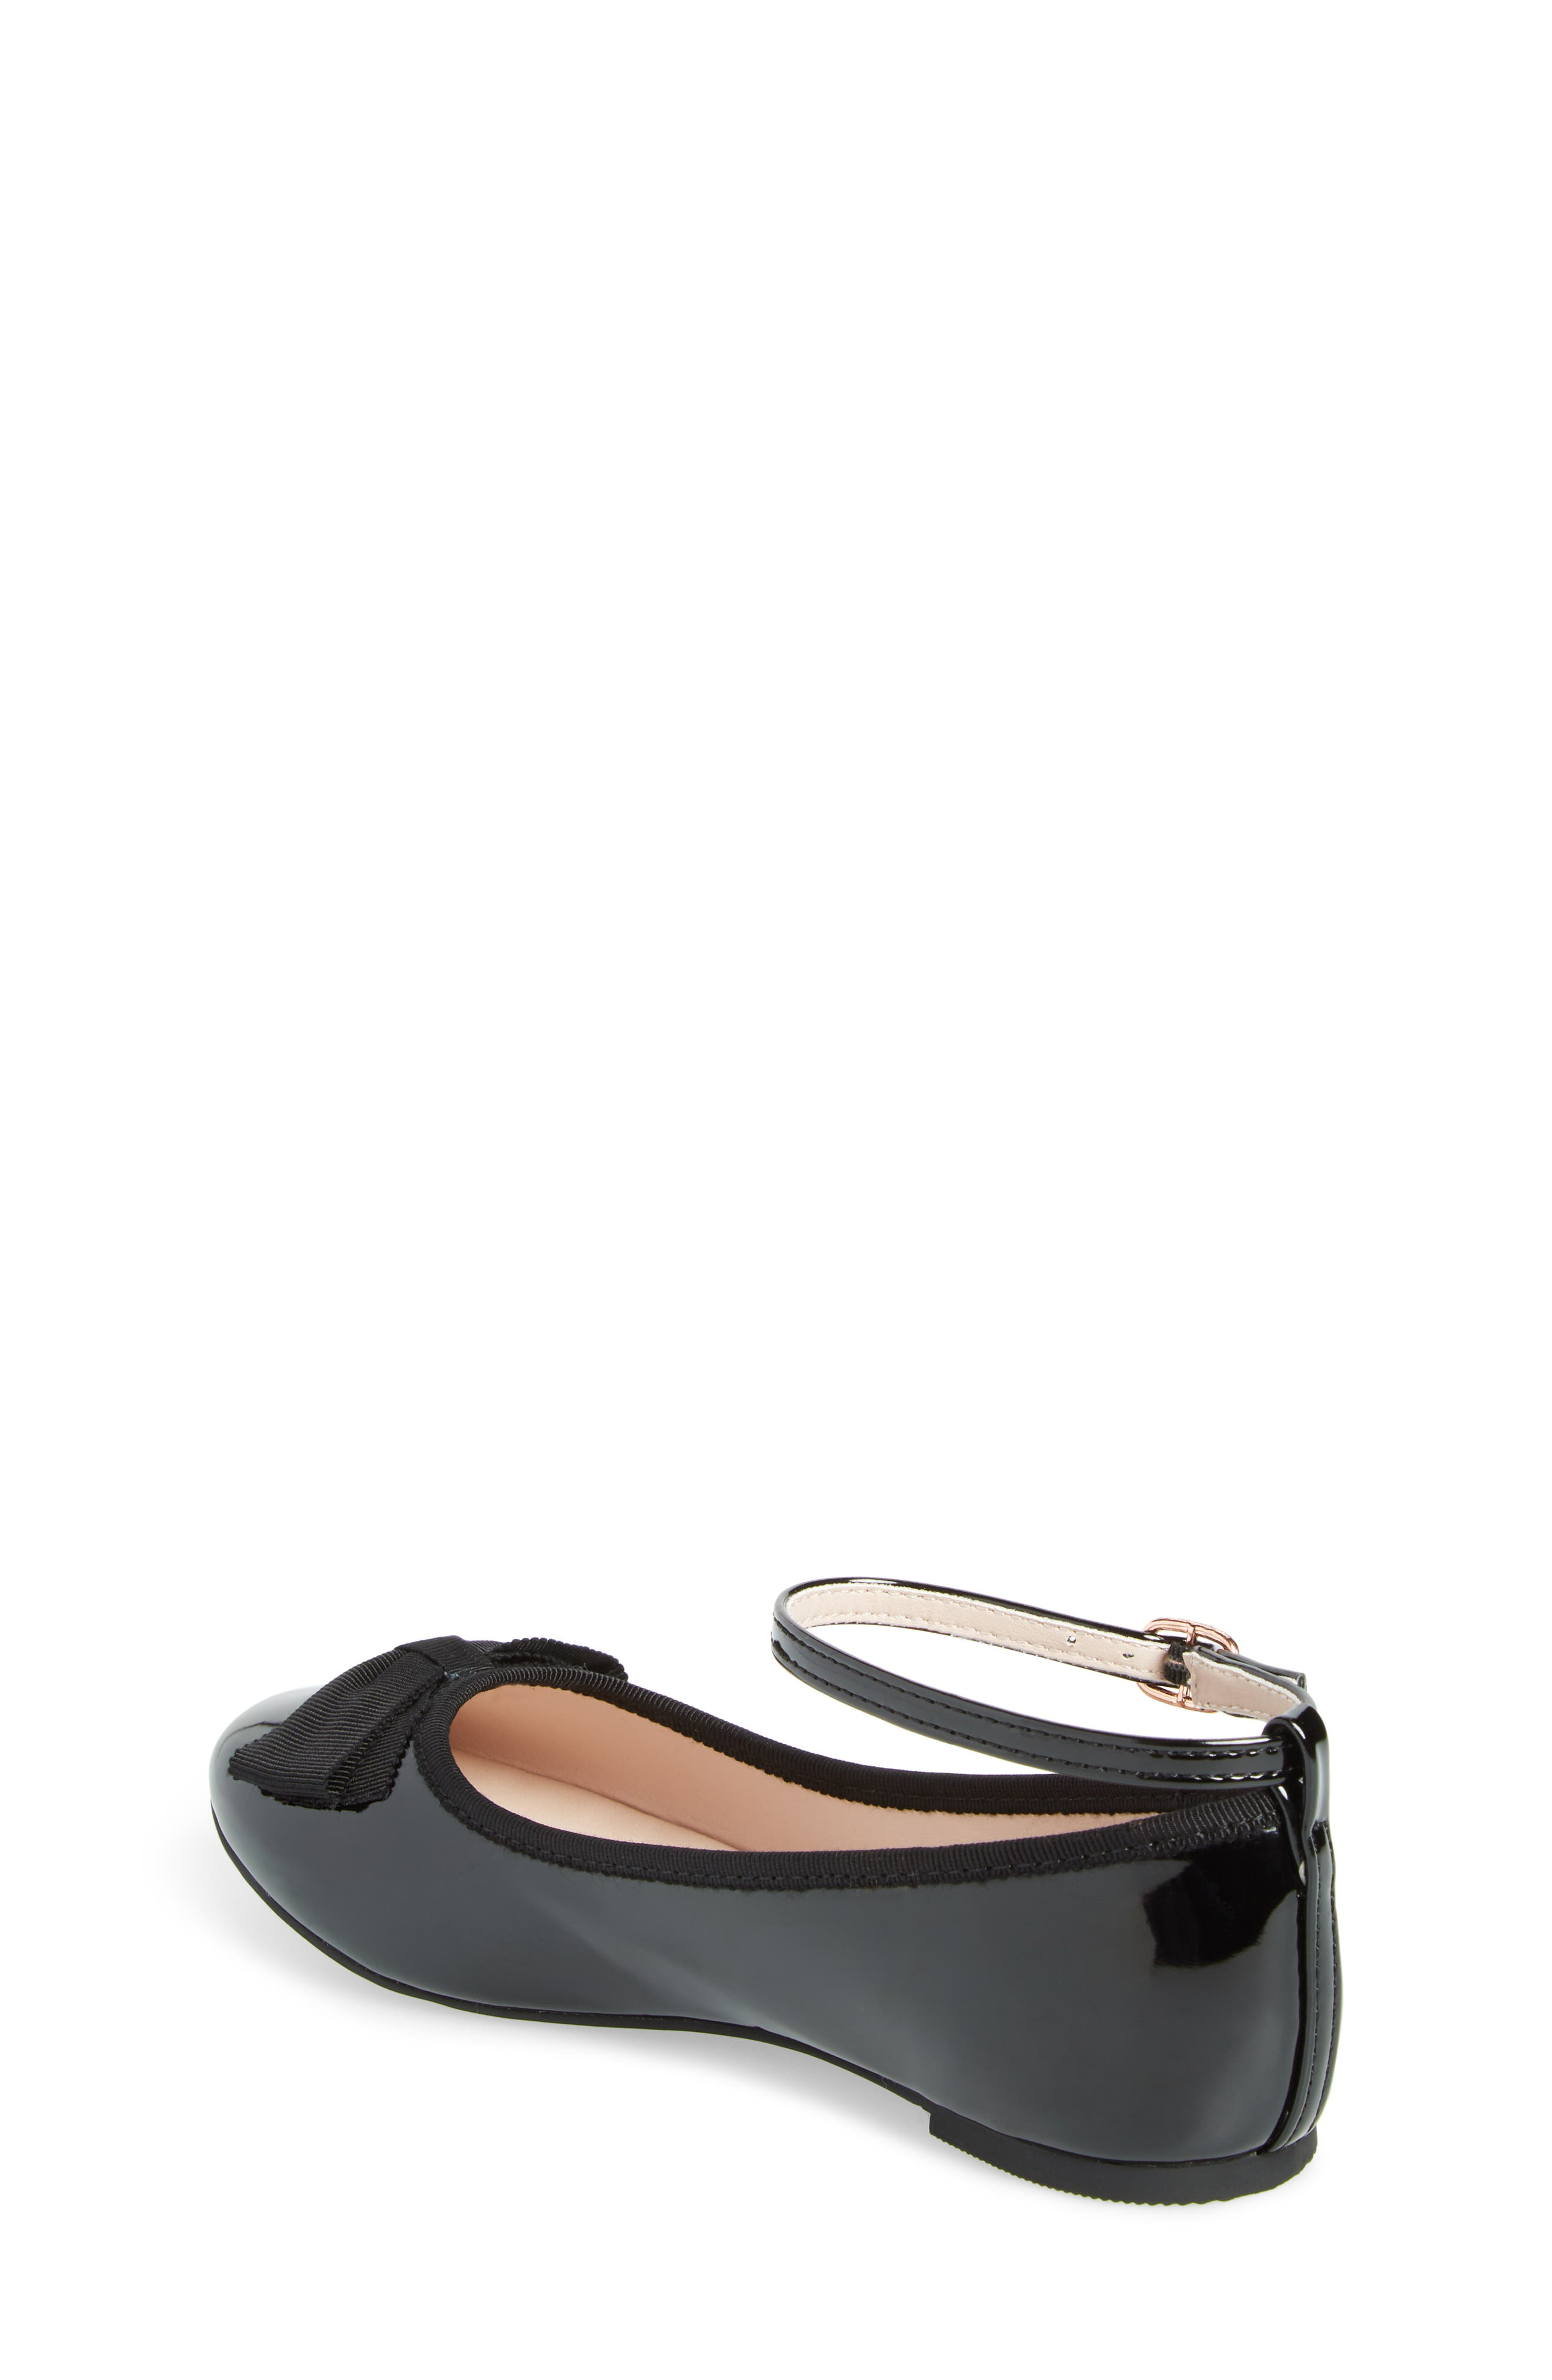 RUBY & BLOOM, Pipa Ankle Strap Ballet Flat, Alternate thumbnail 2, color, BLACK FAUX PATENT